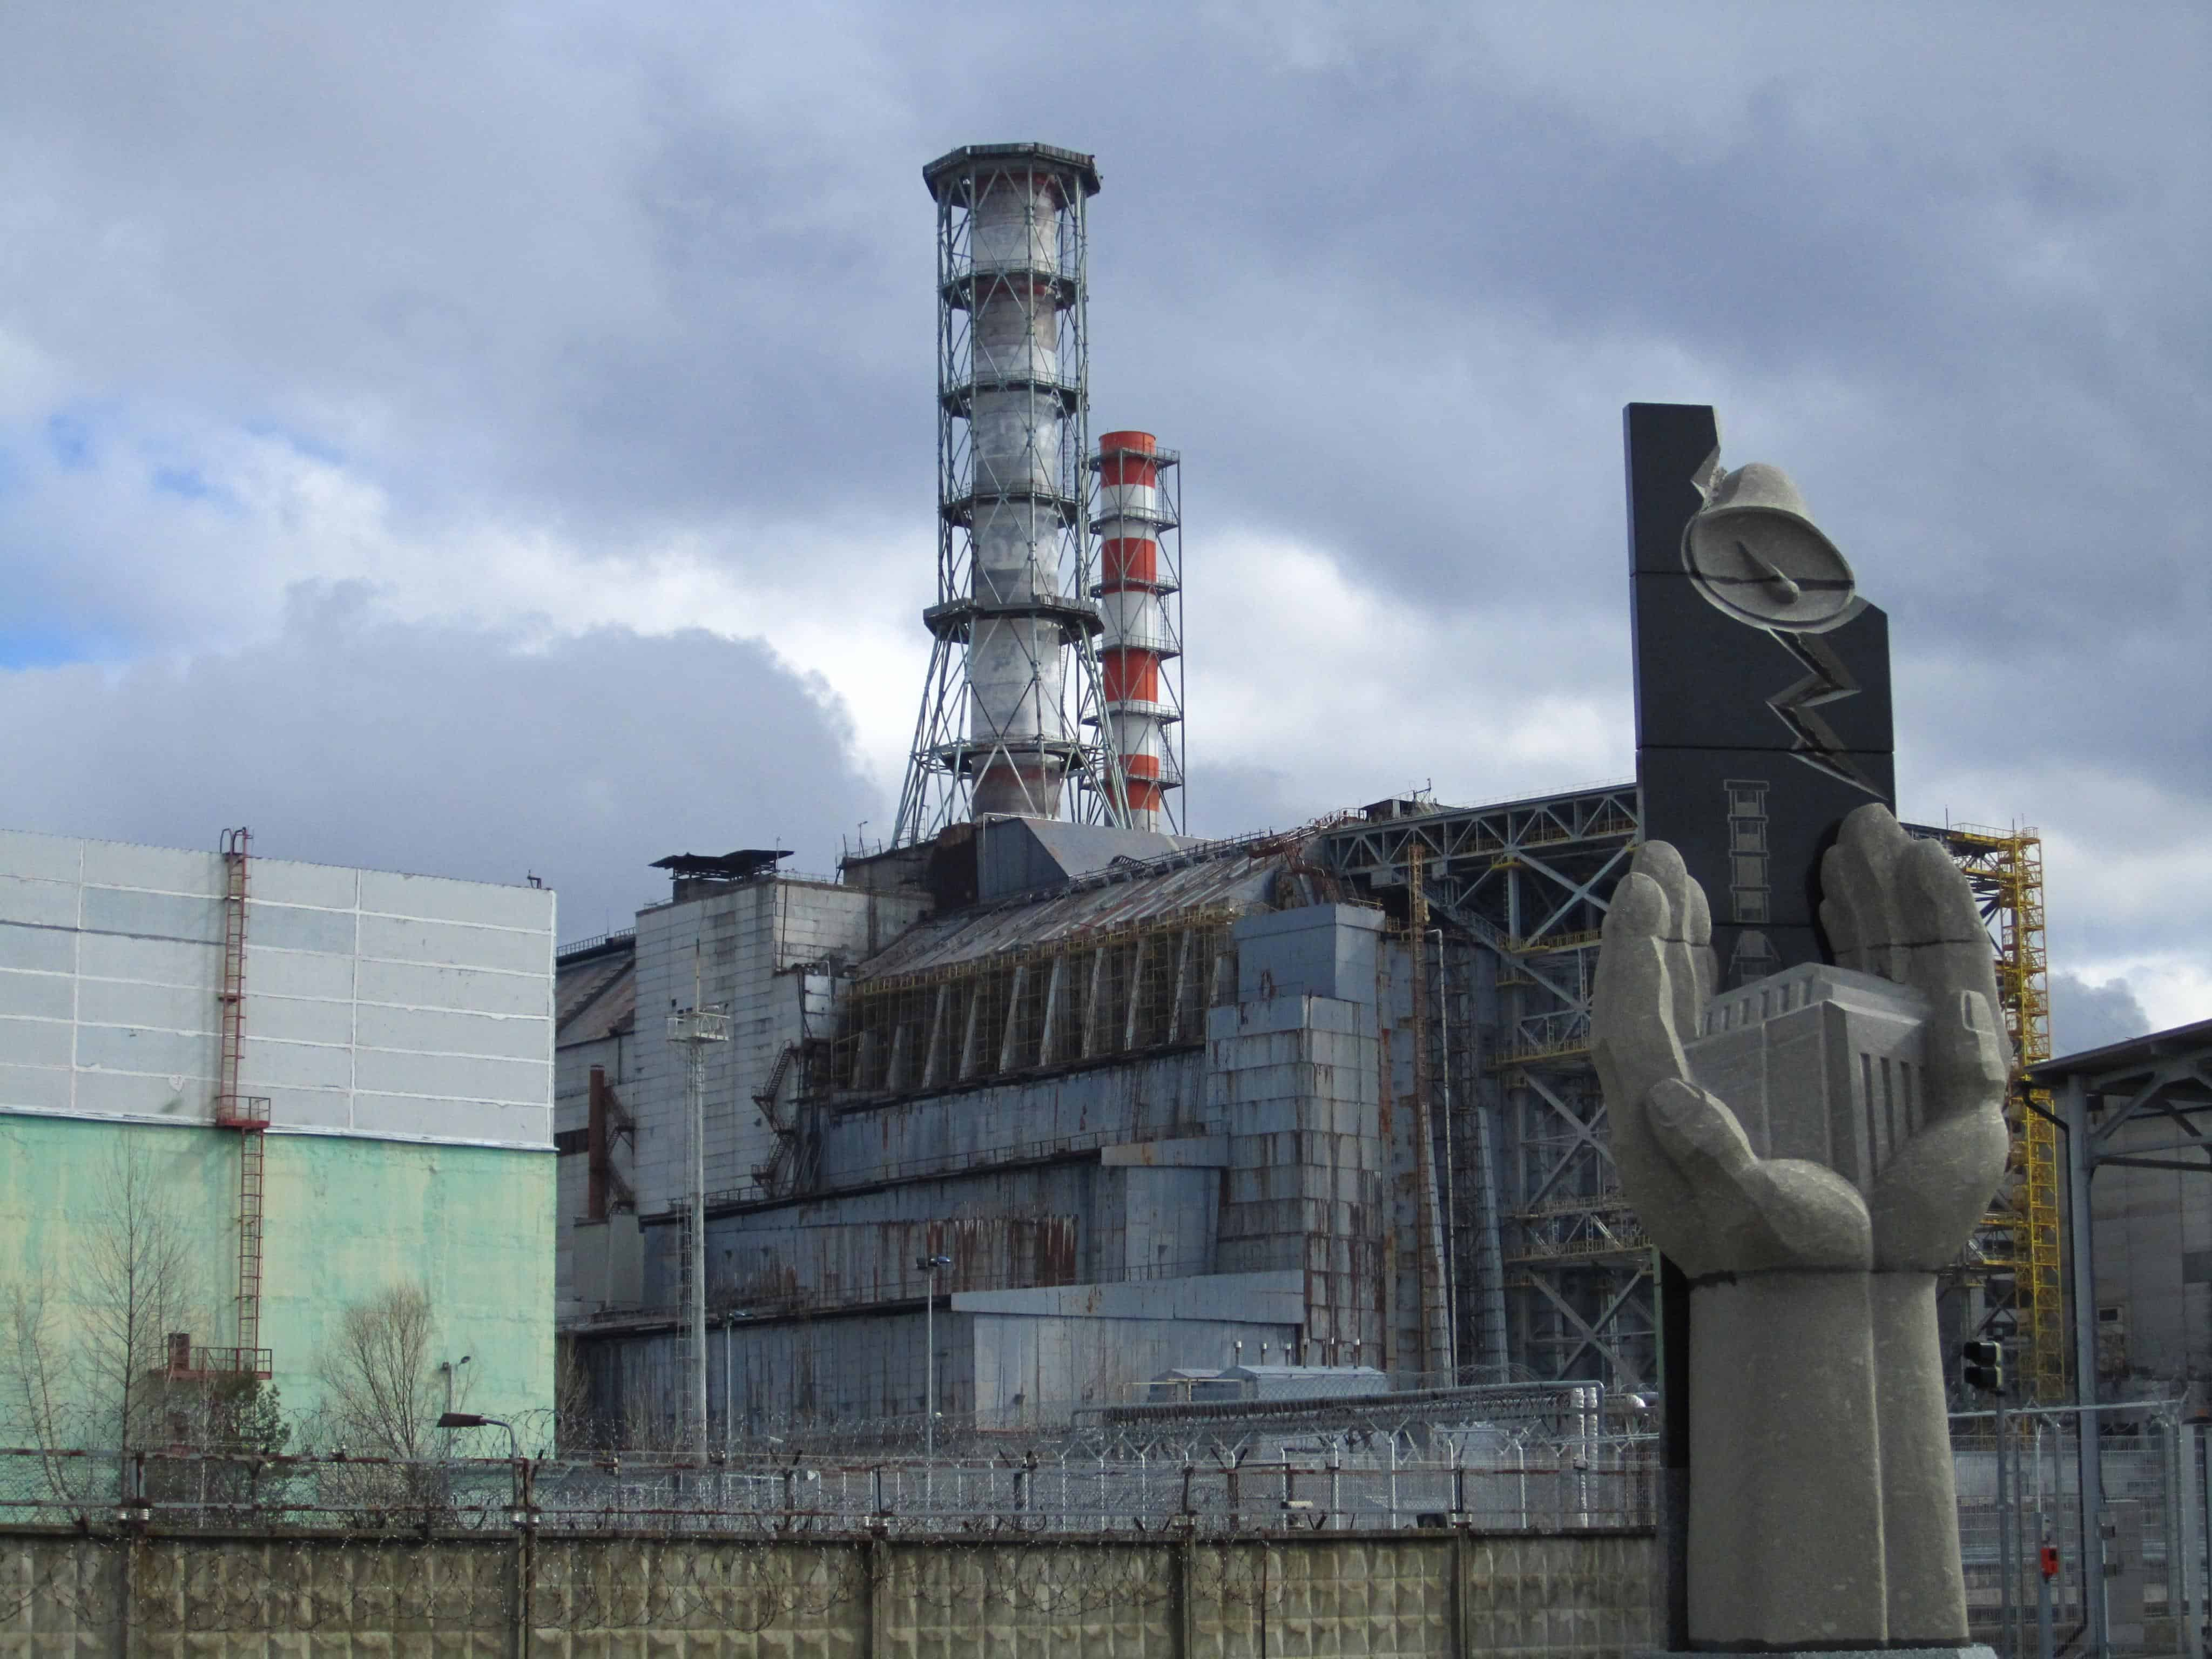 Chernobyl: Home of The Ultimate Tragedy